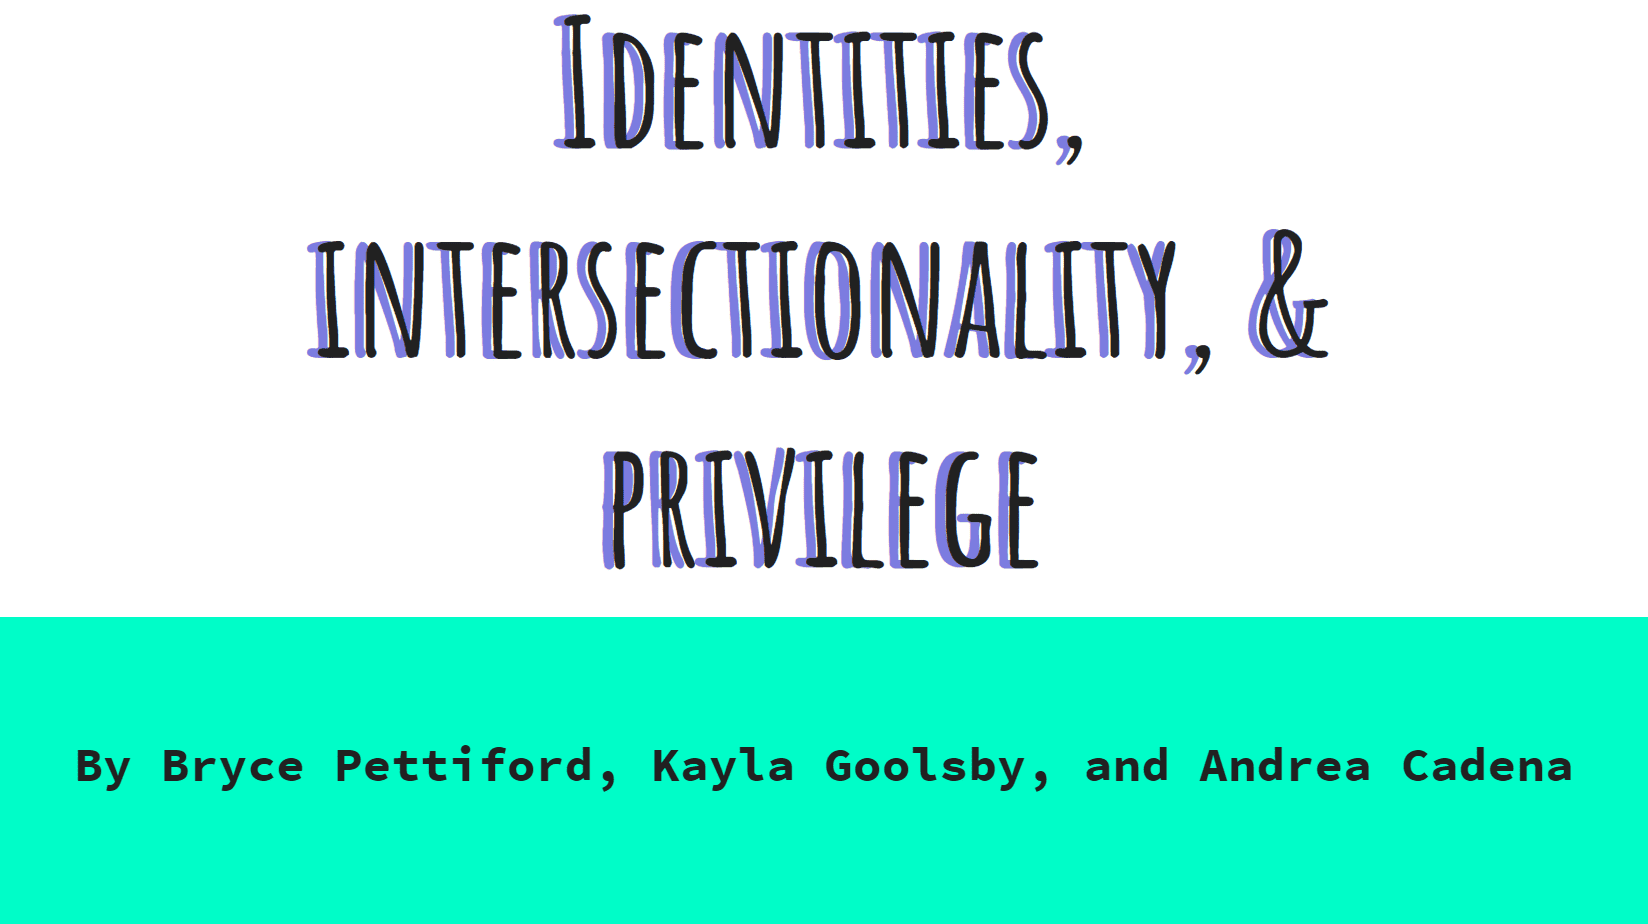 Identity, Intersectionality, and Privilege title card of slidedeck